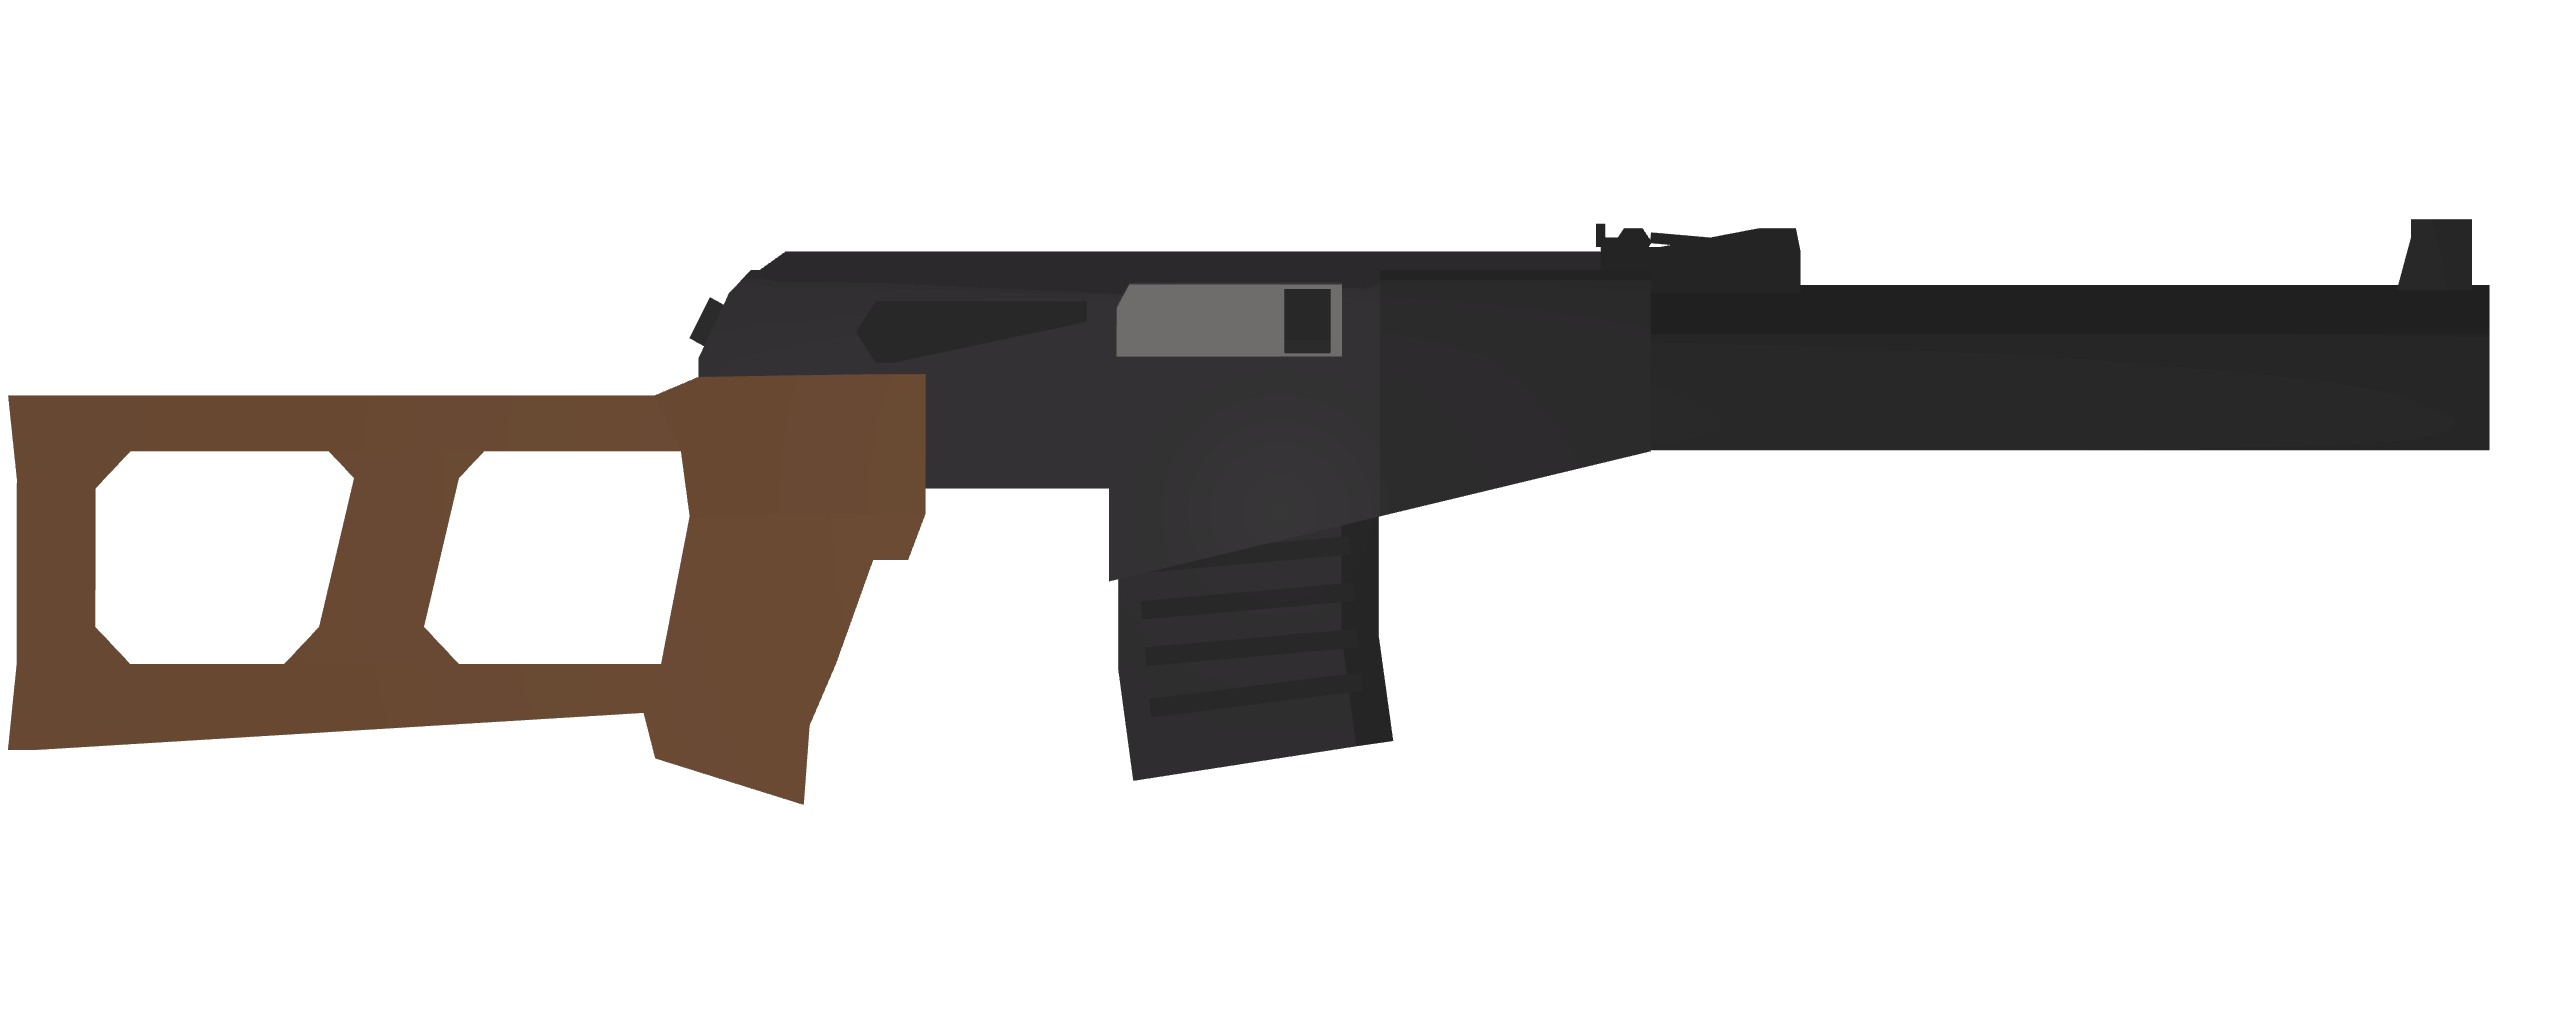 Unturned Uncreated Warfare Mods & All ID List + Attachments - Russian Weapons - 438B397